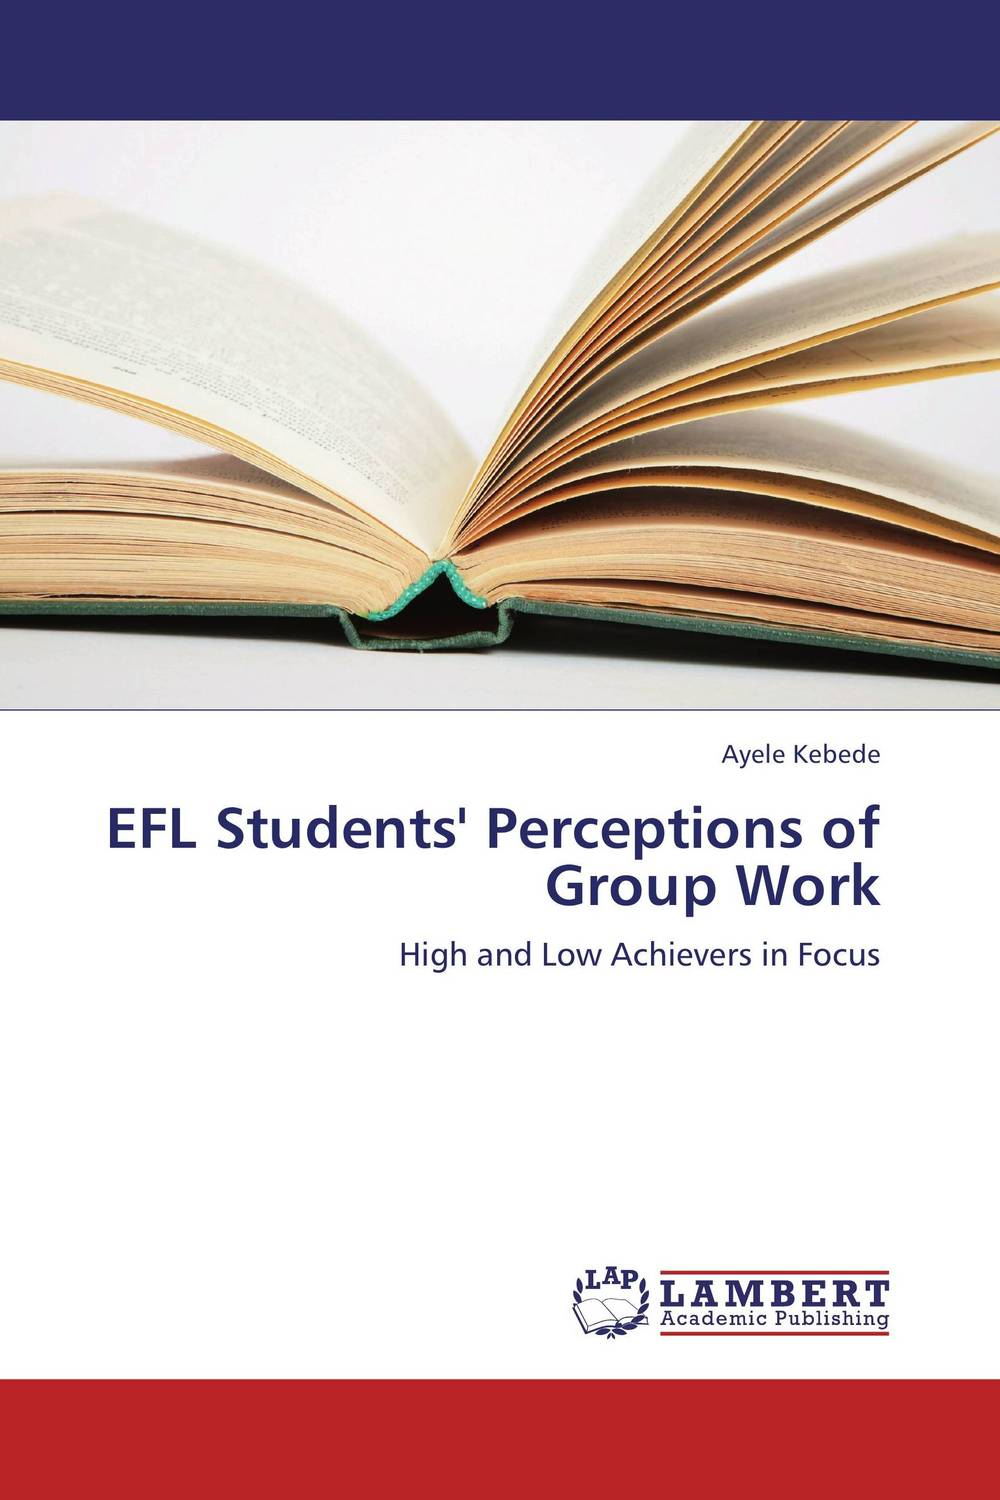 EFL Students' Perceptions of Group Work paula boehme the perceptions of work life balance benefits